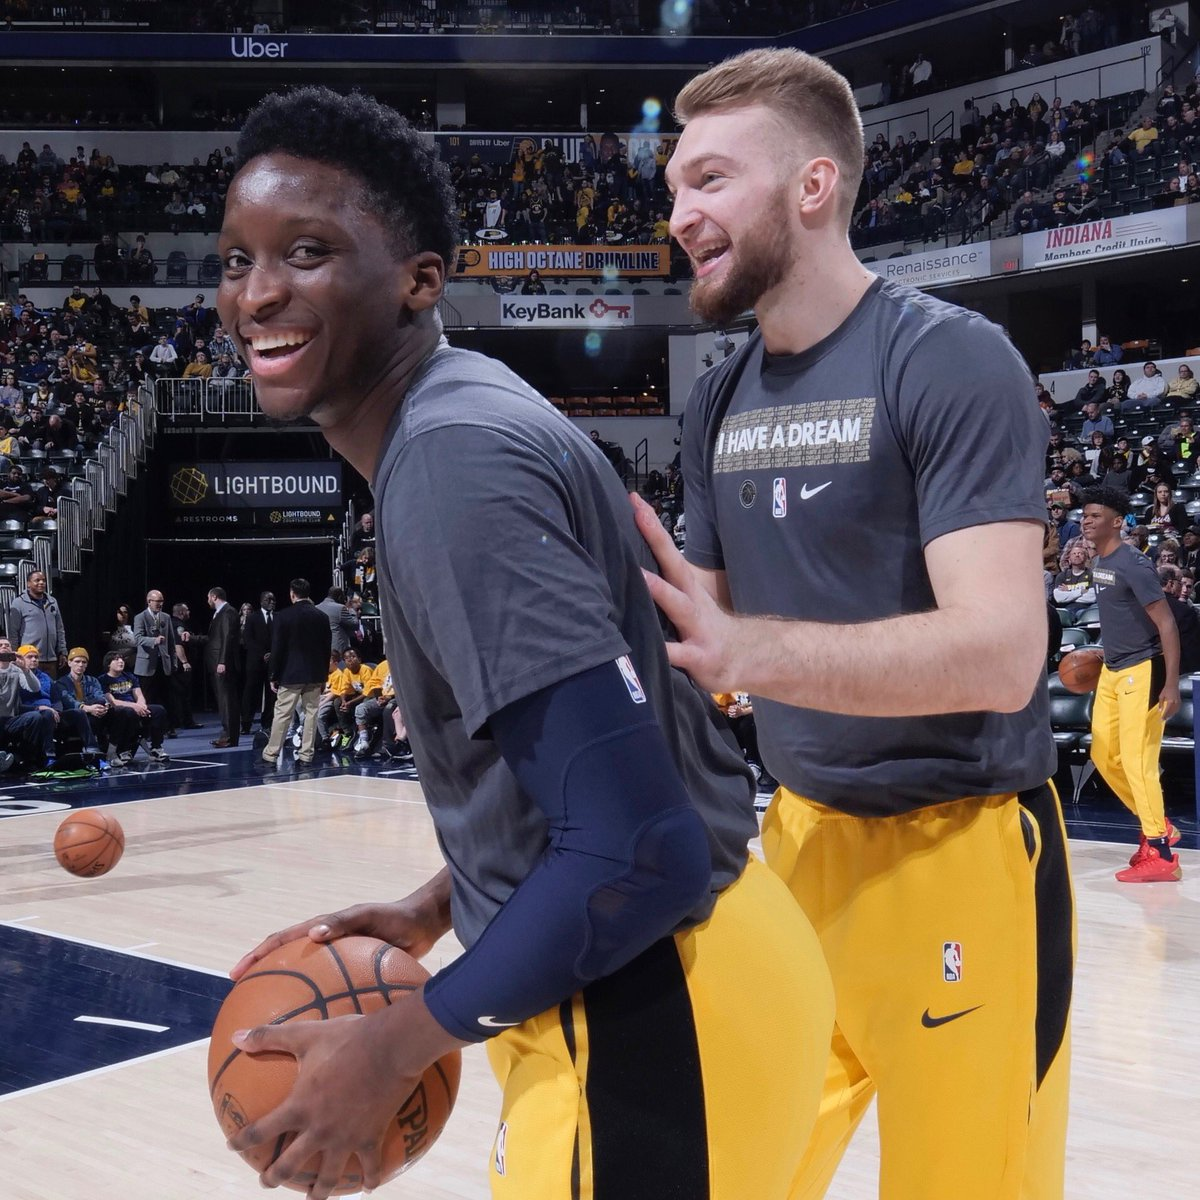 Prayers up to my brother @VicOladipo 🙏🏻🙏🏻🙏🏻 #Family